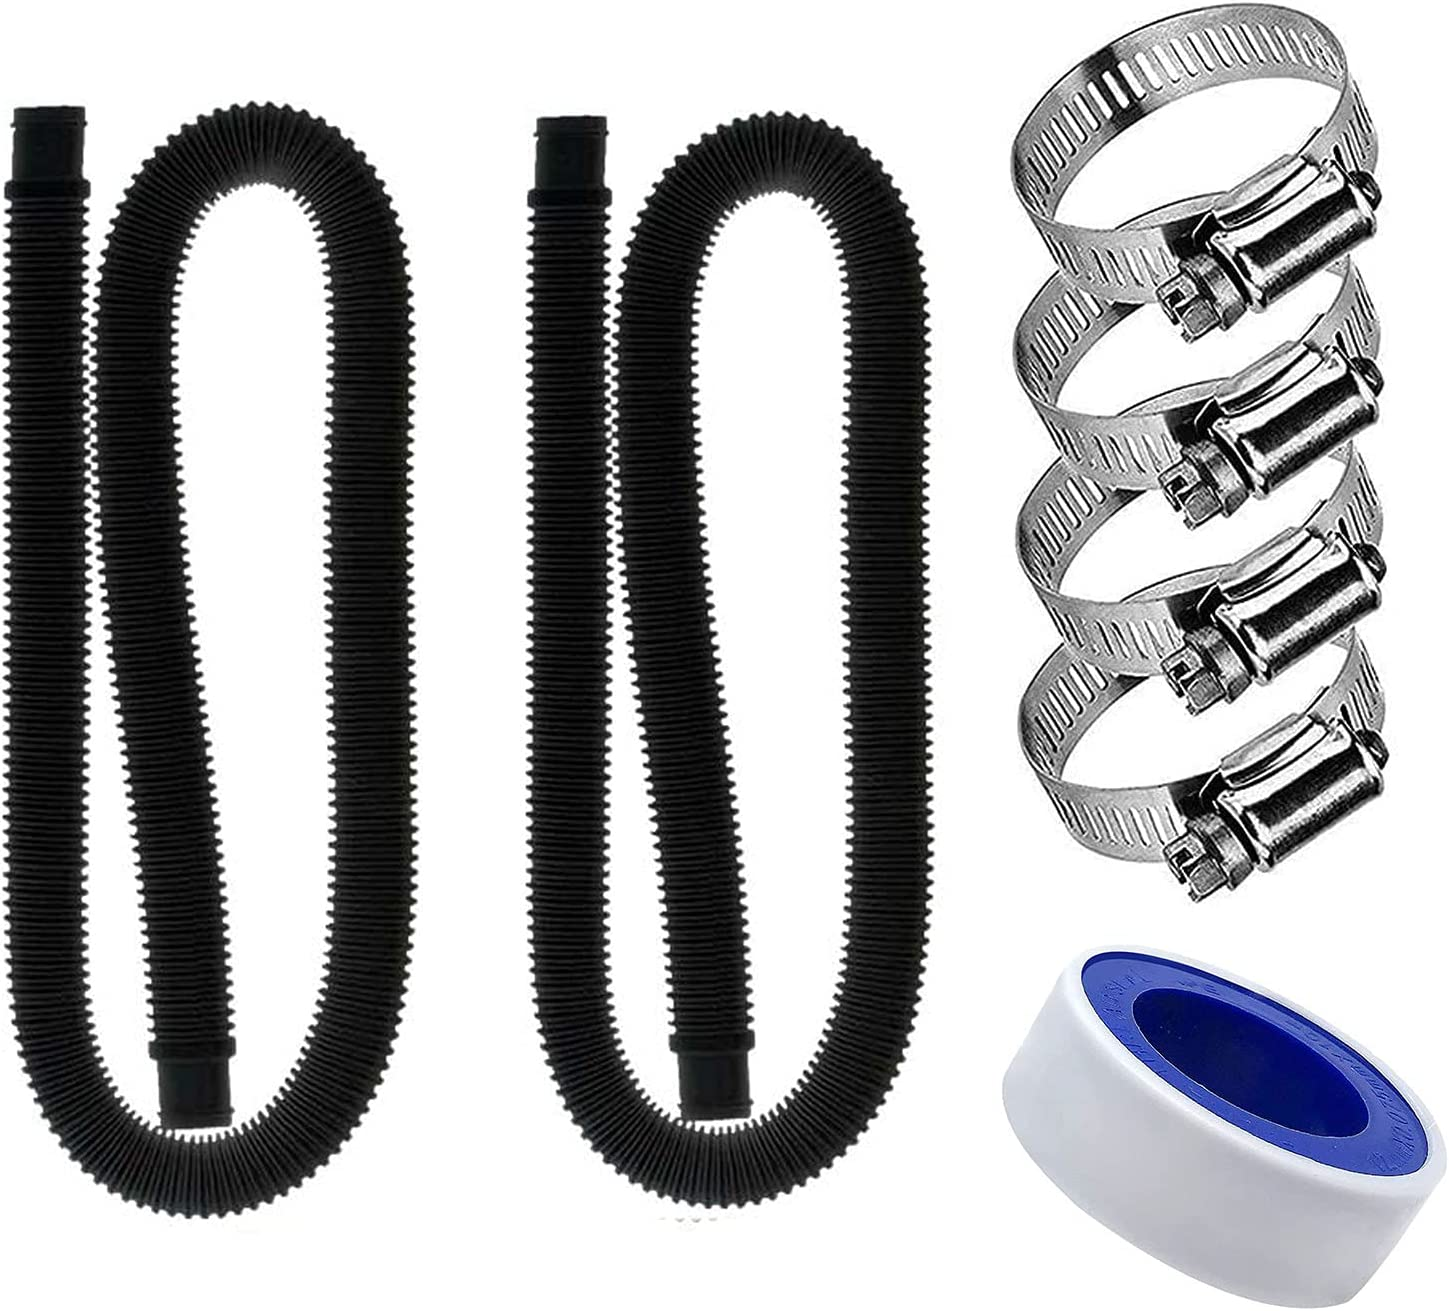 New color ninRYA Replacement Hose Kit 1.25